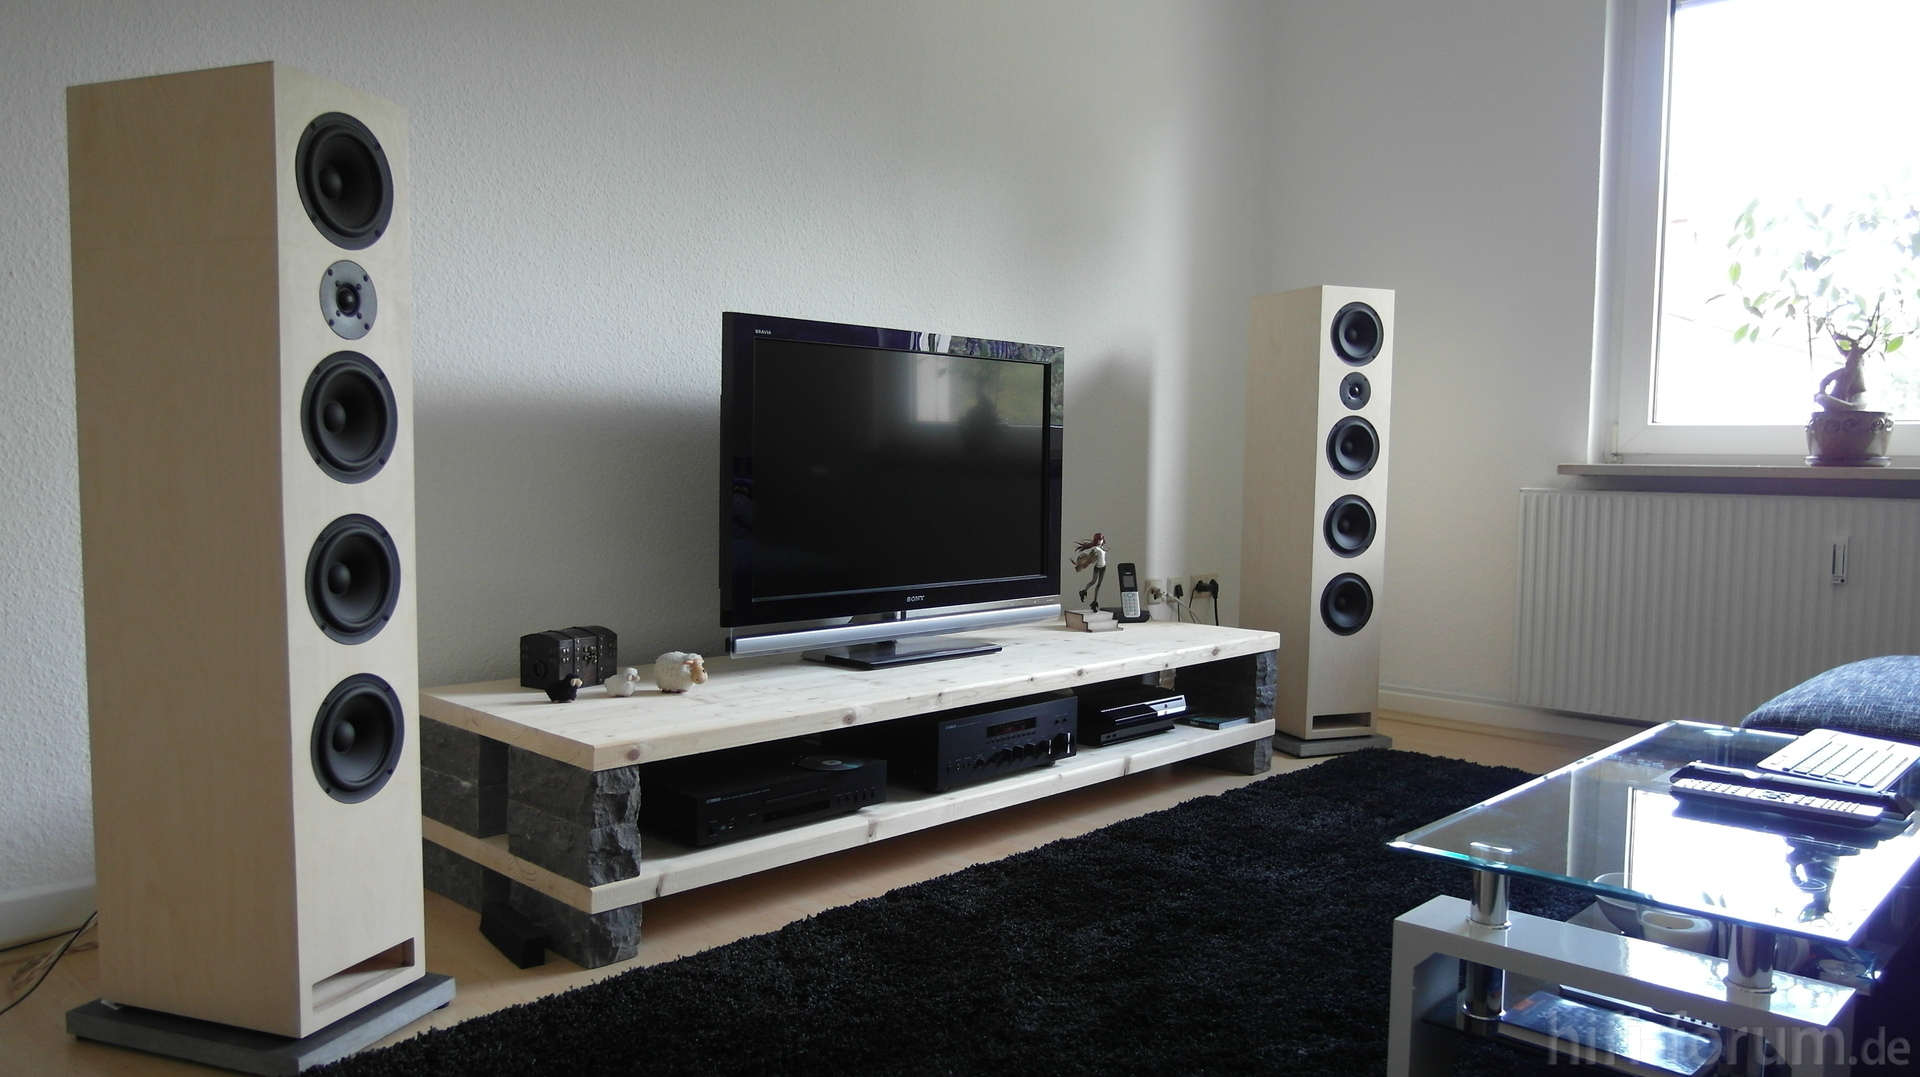 neues wohnzimmer mit sb417 und yamaha sb417 stereo. Black Bedroom Furniture Sets. Home Design Ideas